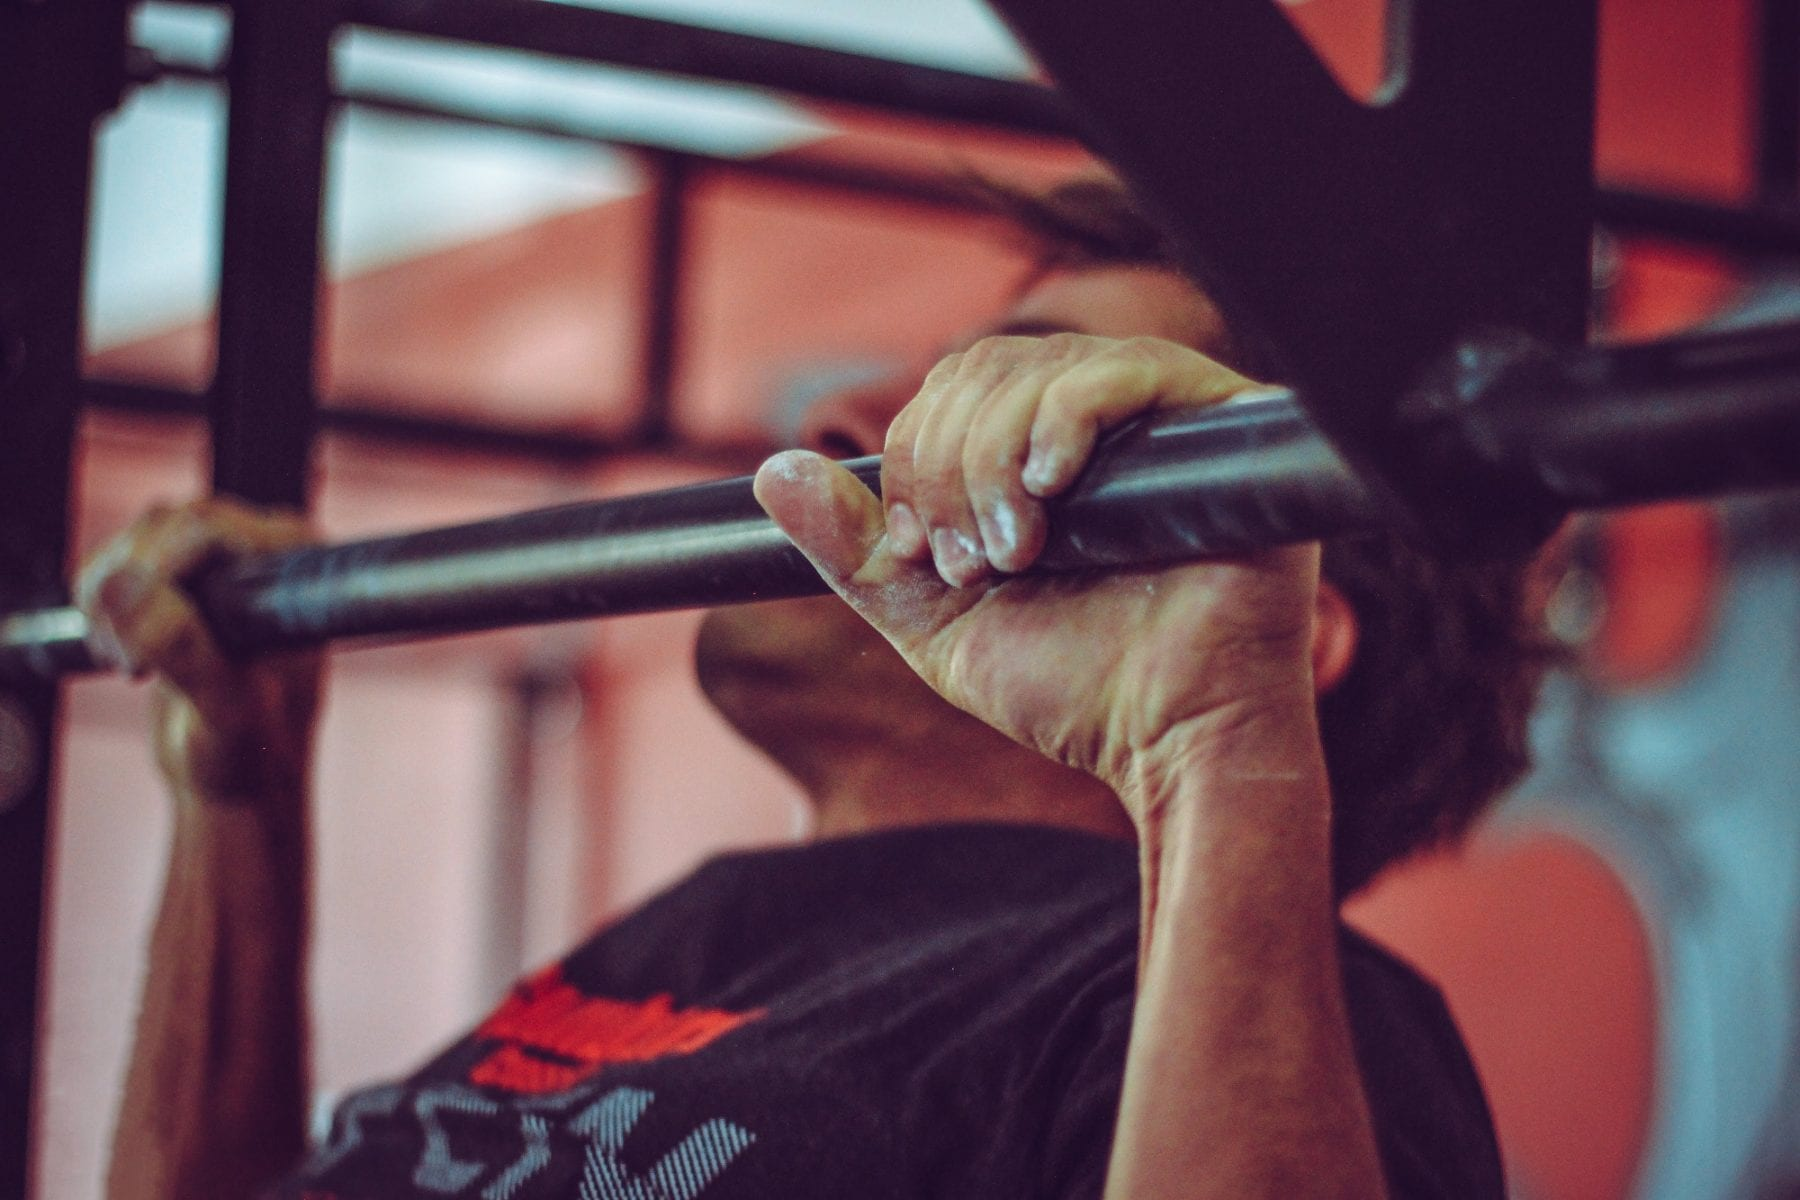 10 Fitness Exercises That Will Improve Your Work Performance And Decrease Risk For Injury